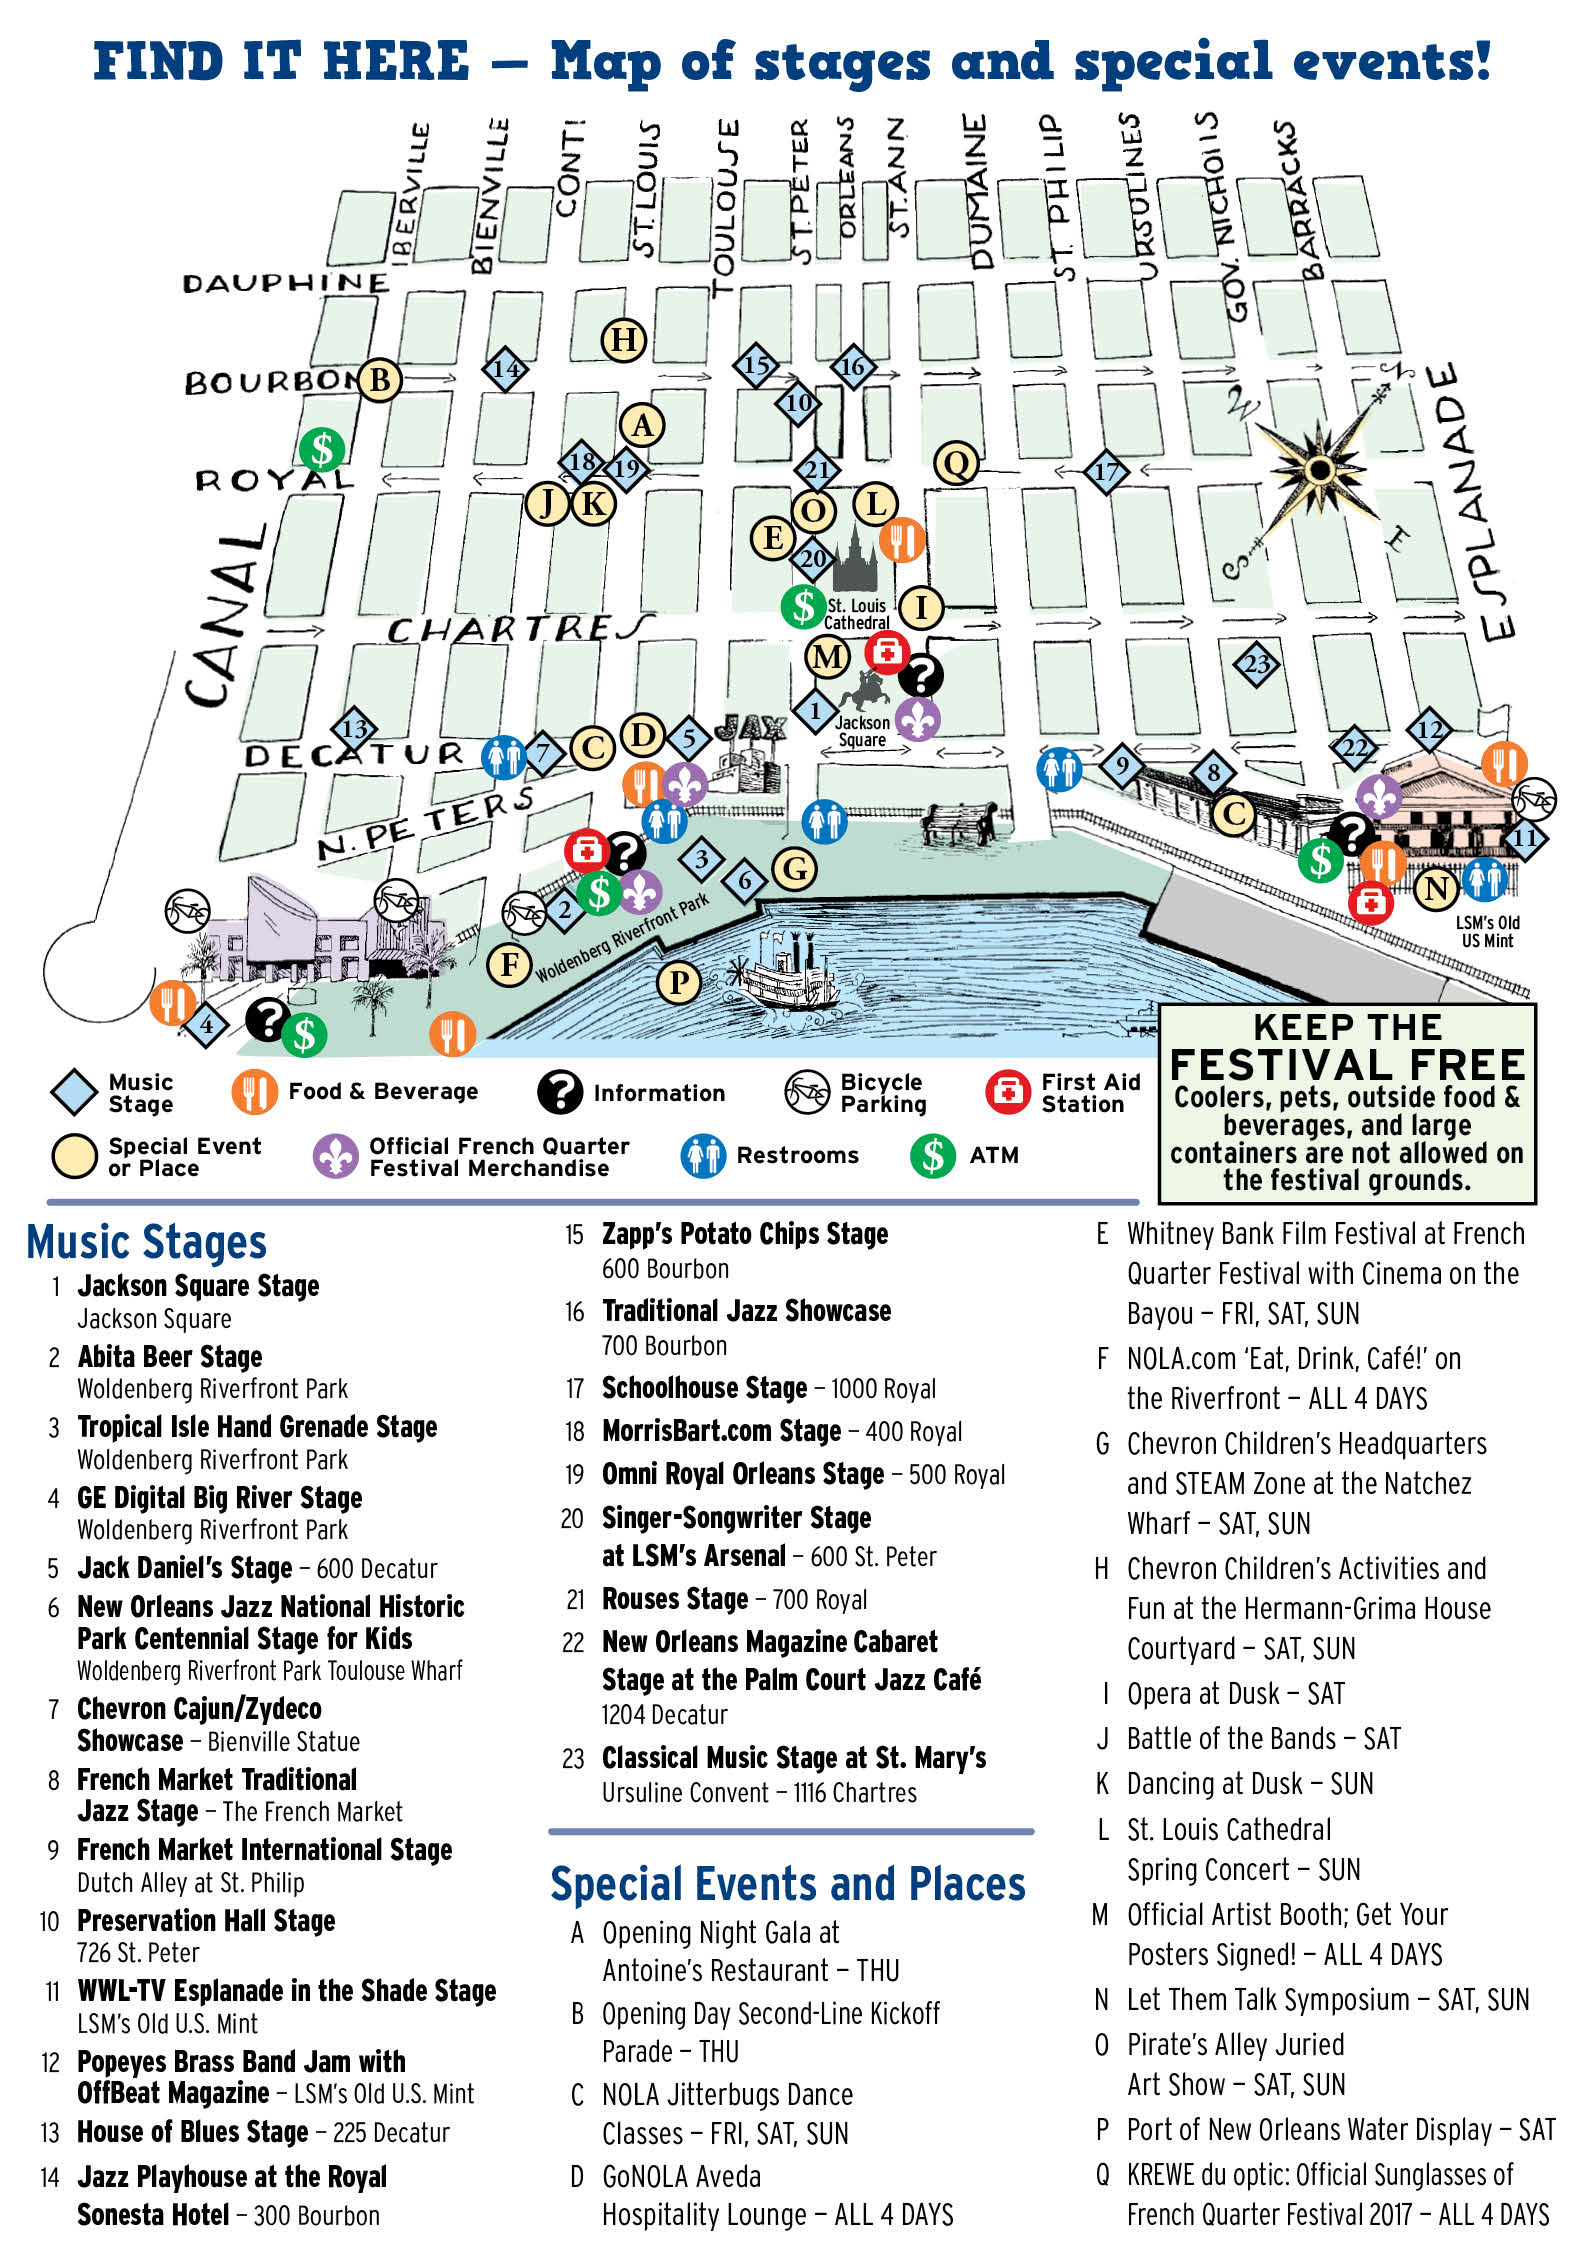 Hotel Monteleone is located in the heart of all the French Quarter Fest action. 2017 map courtesy French Quarter Festival.